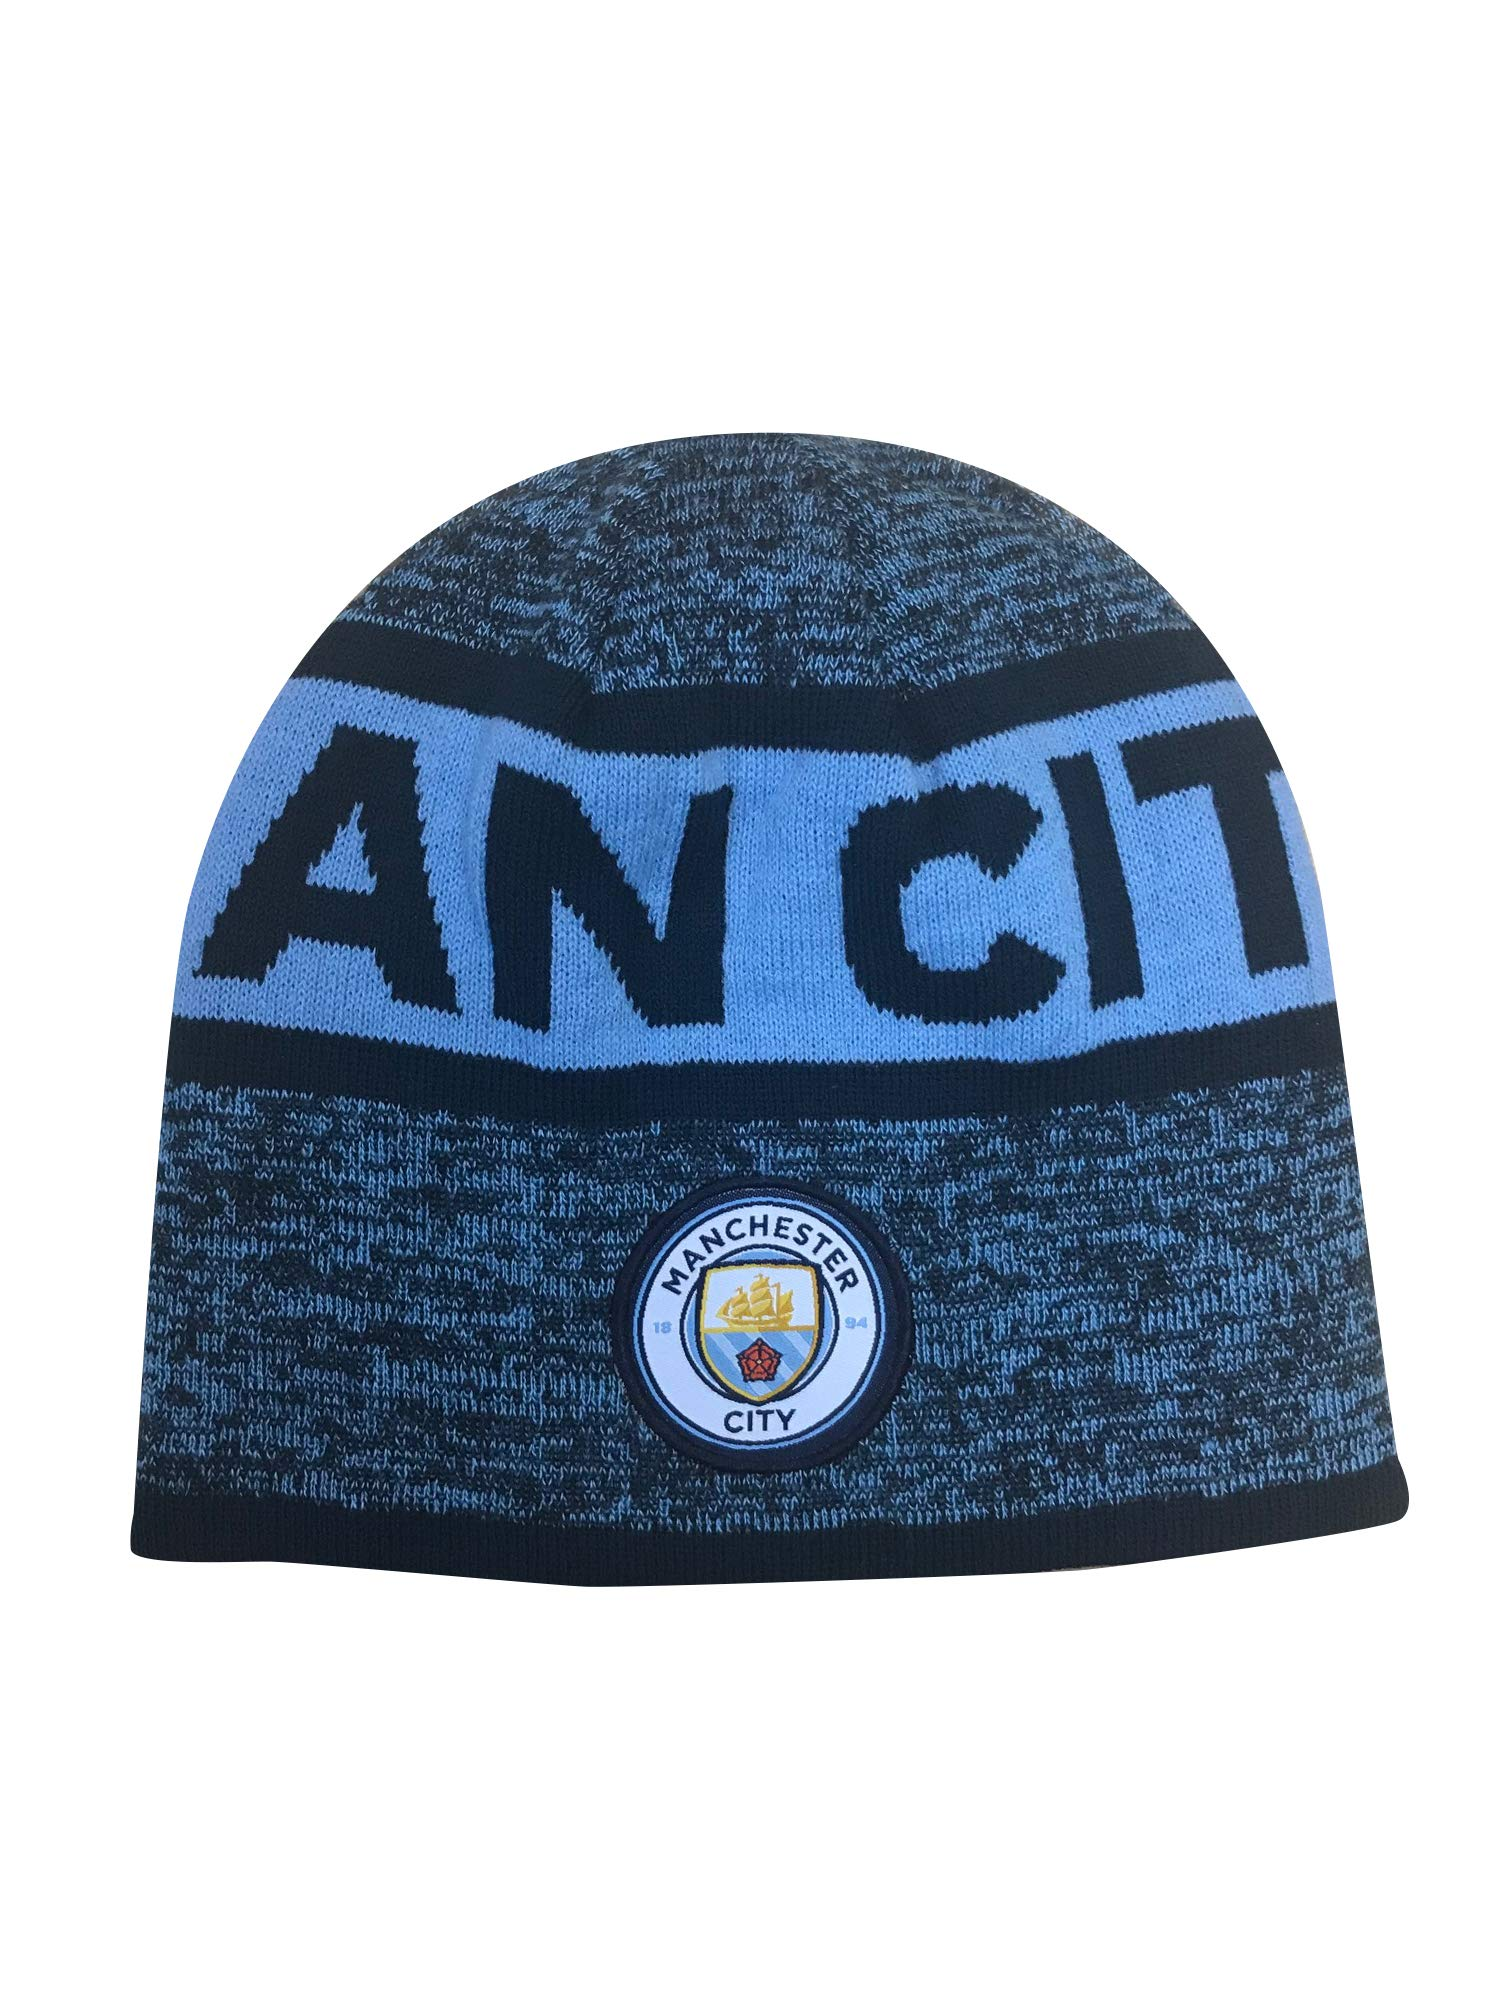 Icon Sports Manchester City Official Licensed Reversible Beanie by Icon Sports